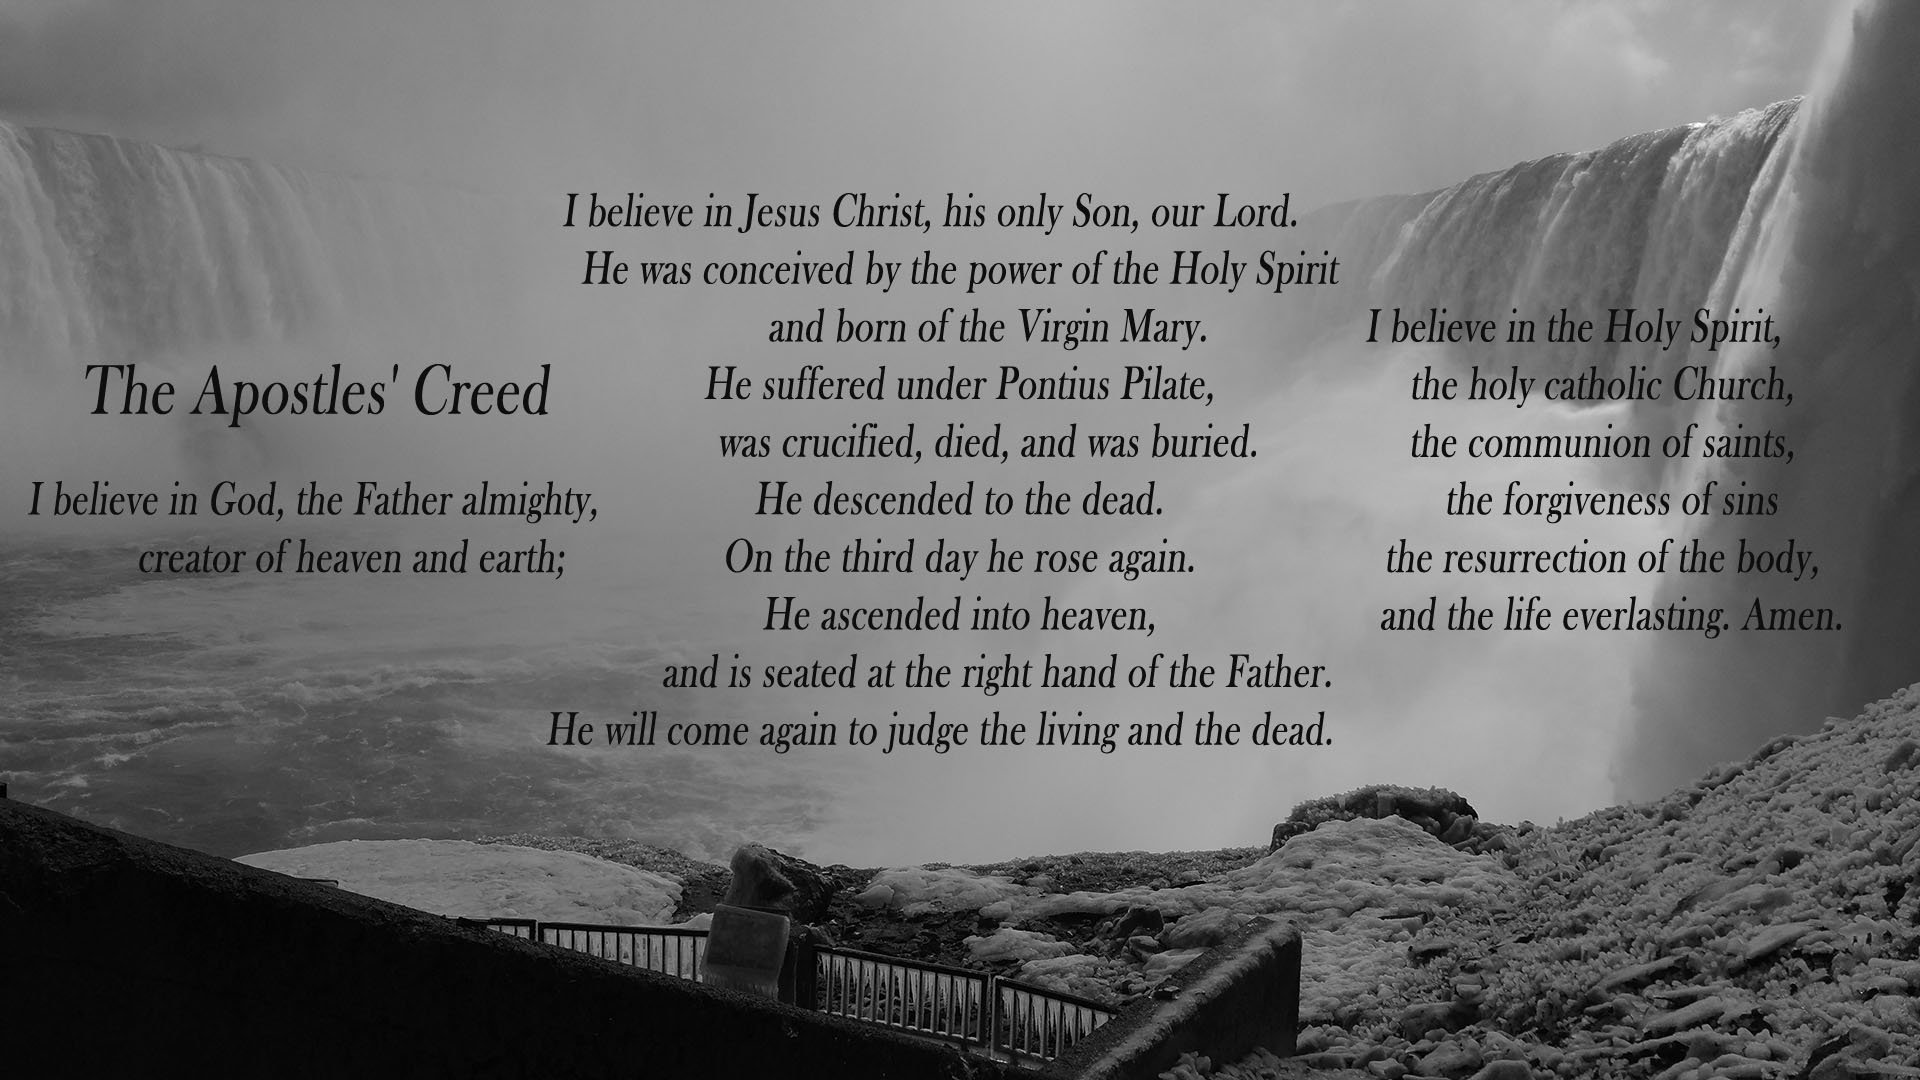 The Apostles' Creed- I believe in God, the Father almighty,creator of heaven and earth;I believe in Jesus Christ, his only Son,